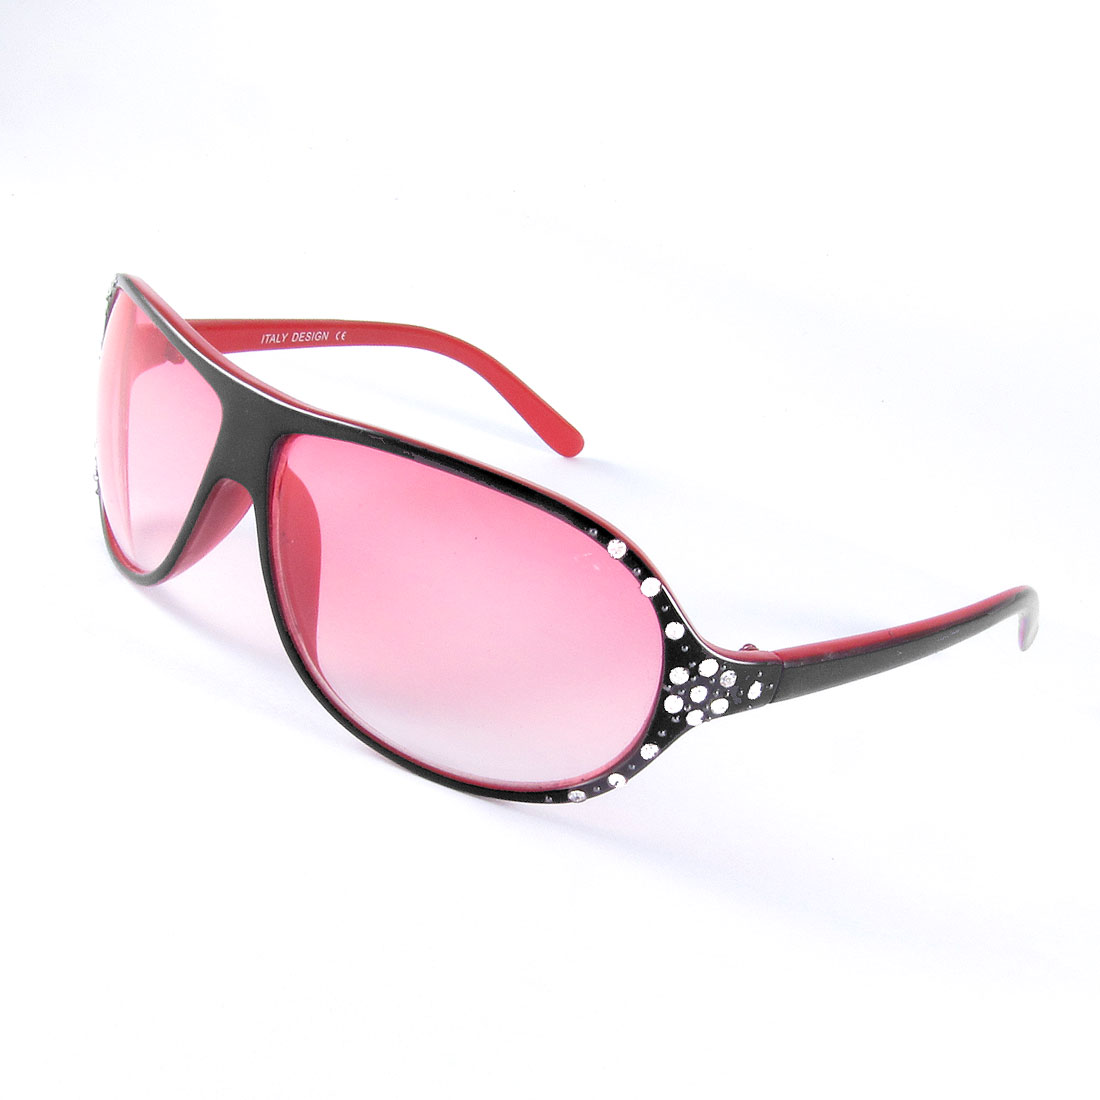 Rhinestones Inlaid Red Black Plastic Frame Gradient Lens Sunglasses for Women